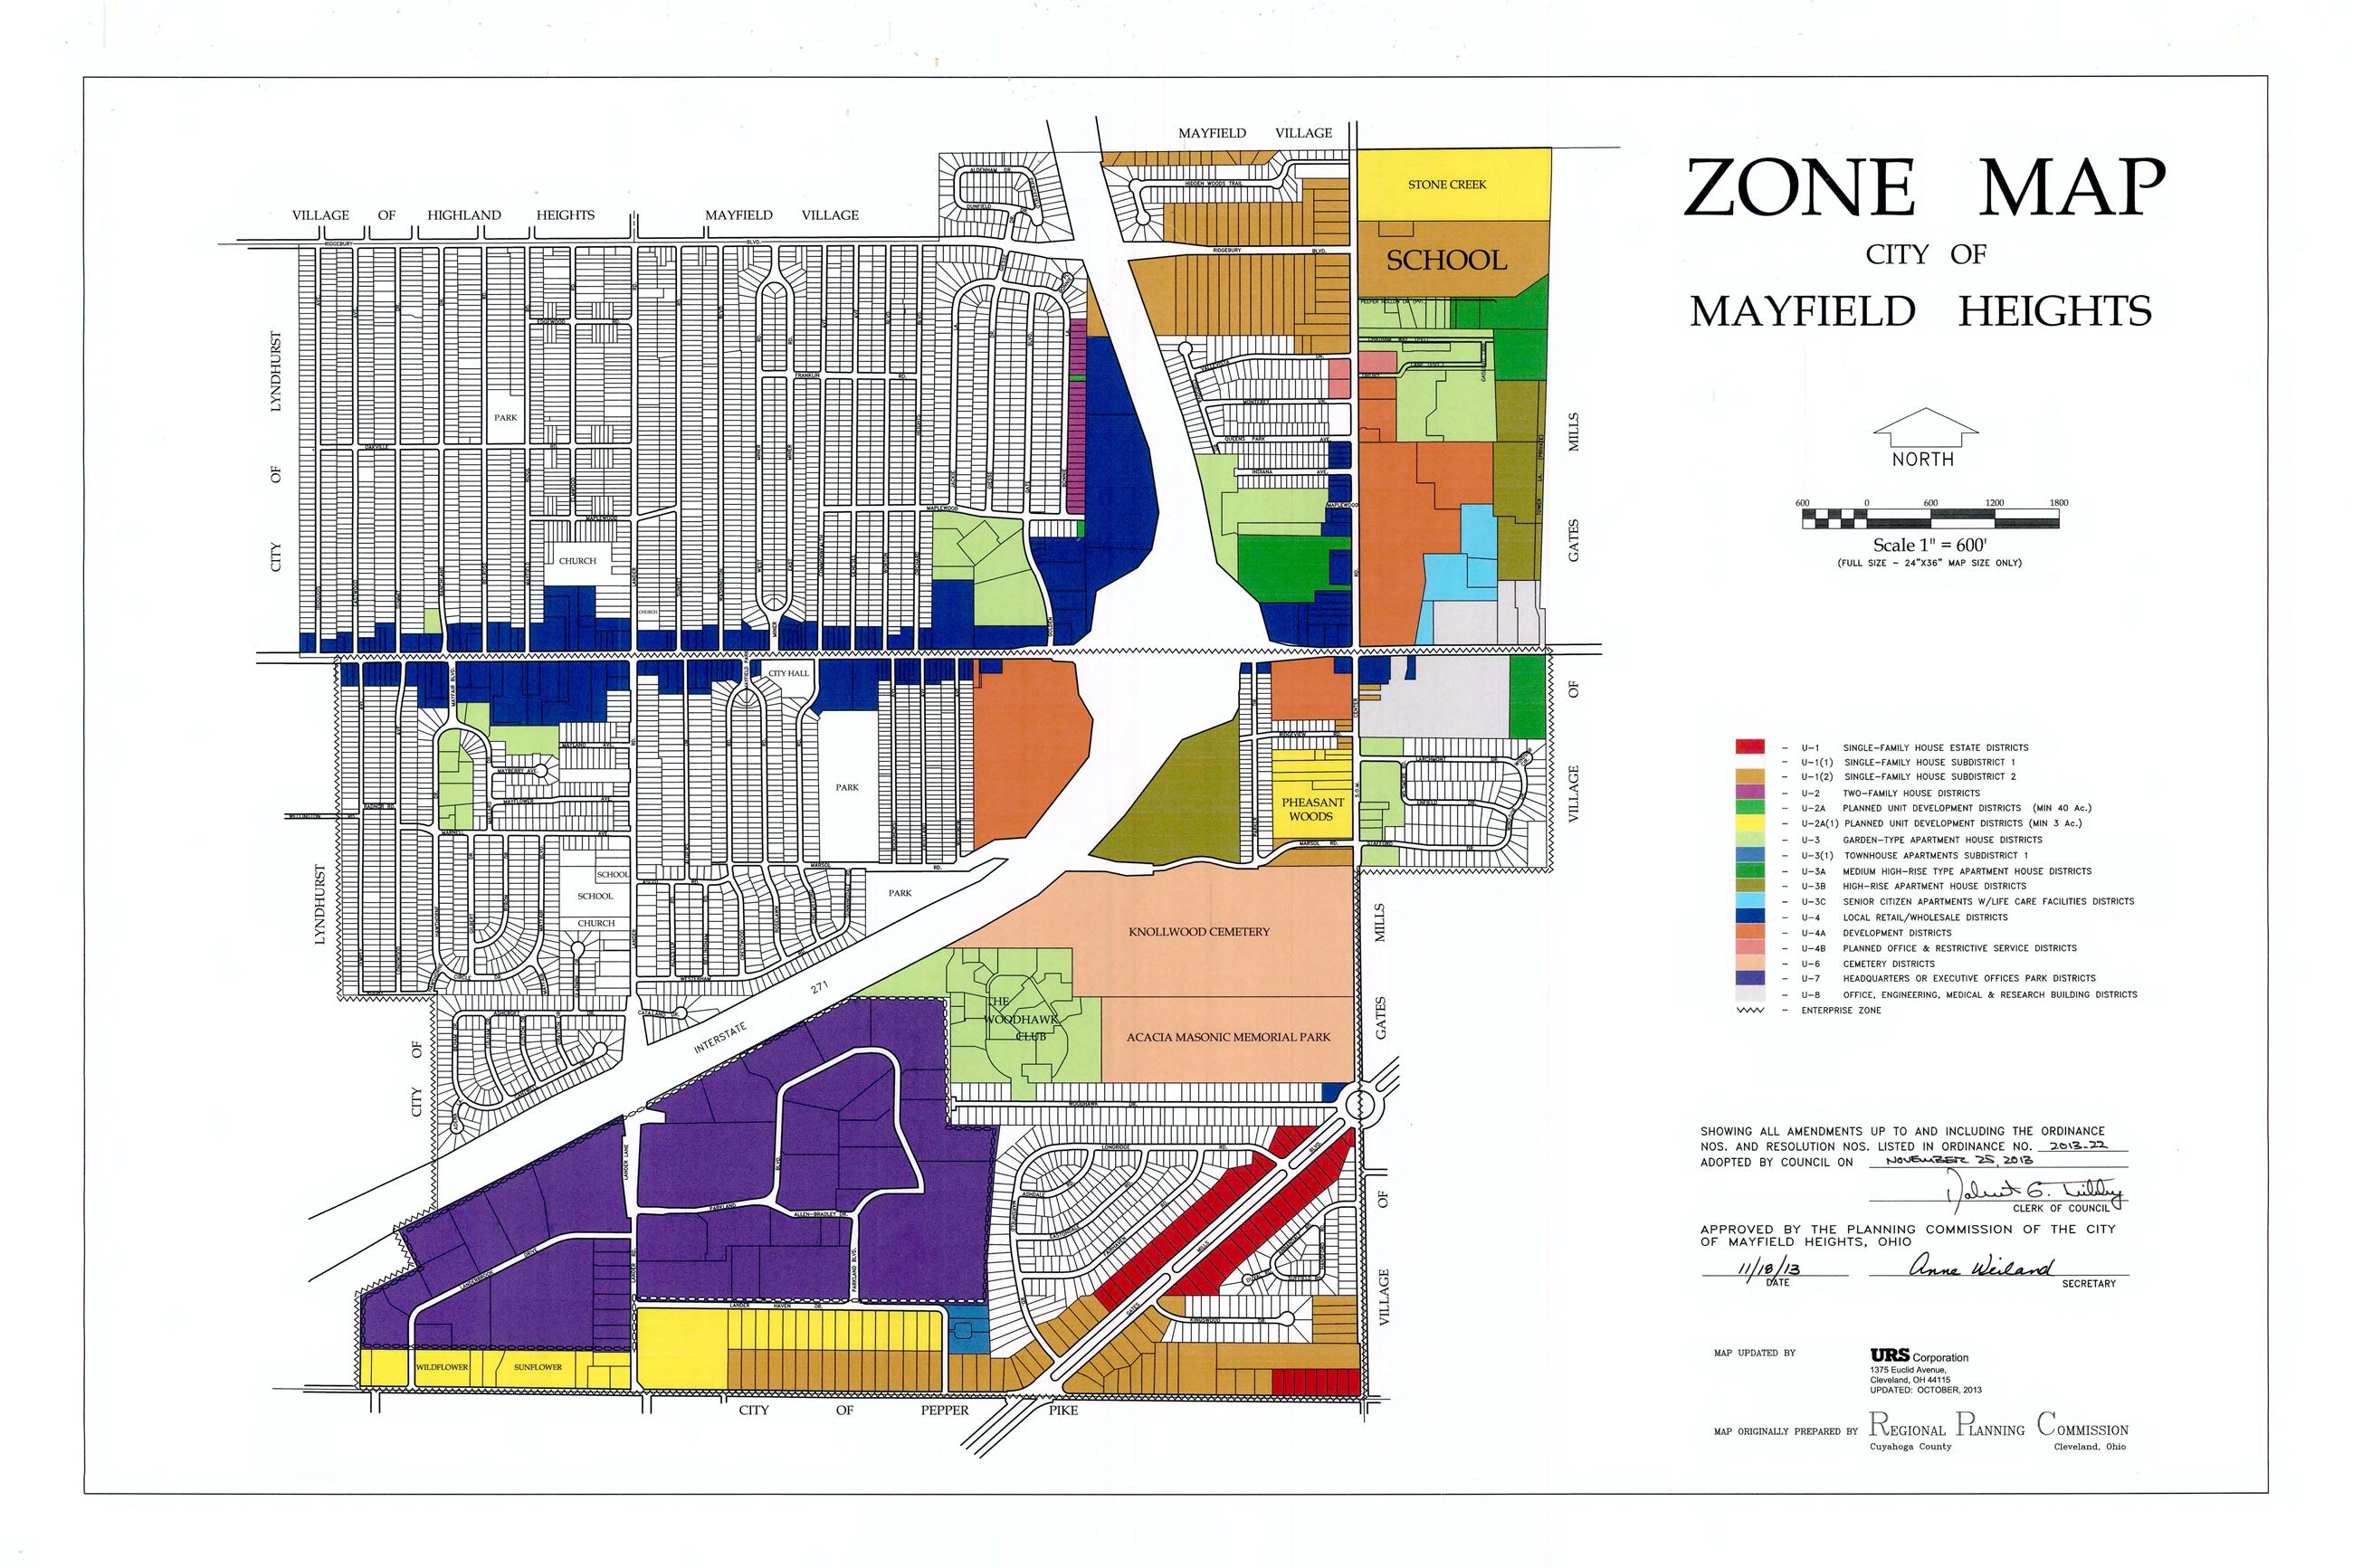 24x36_Zone Map_Color 2013 reduced image